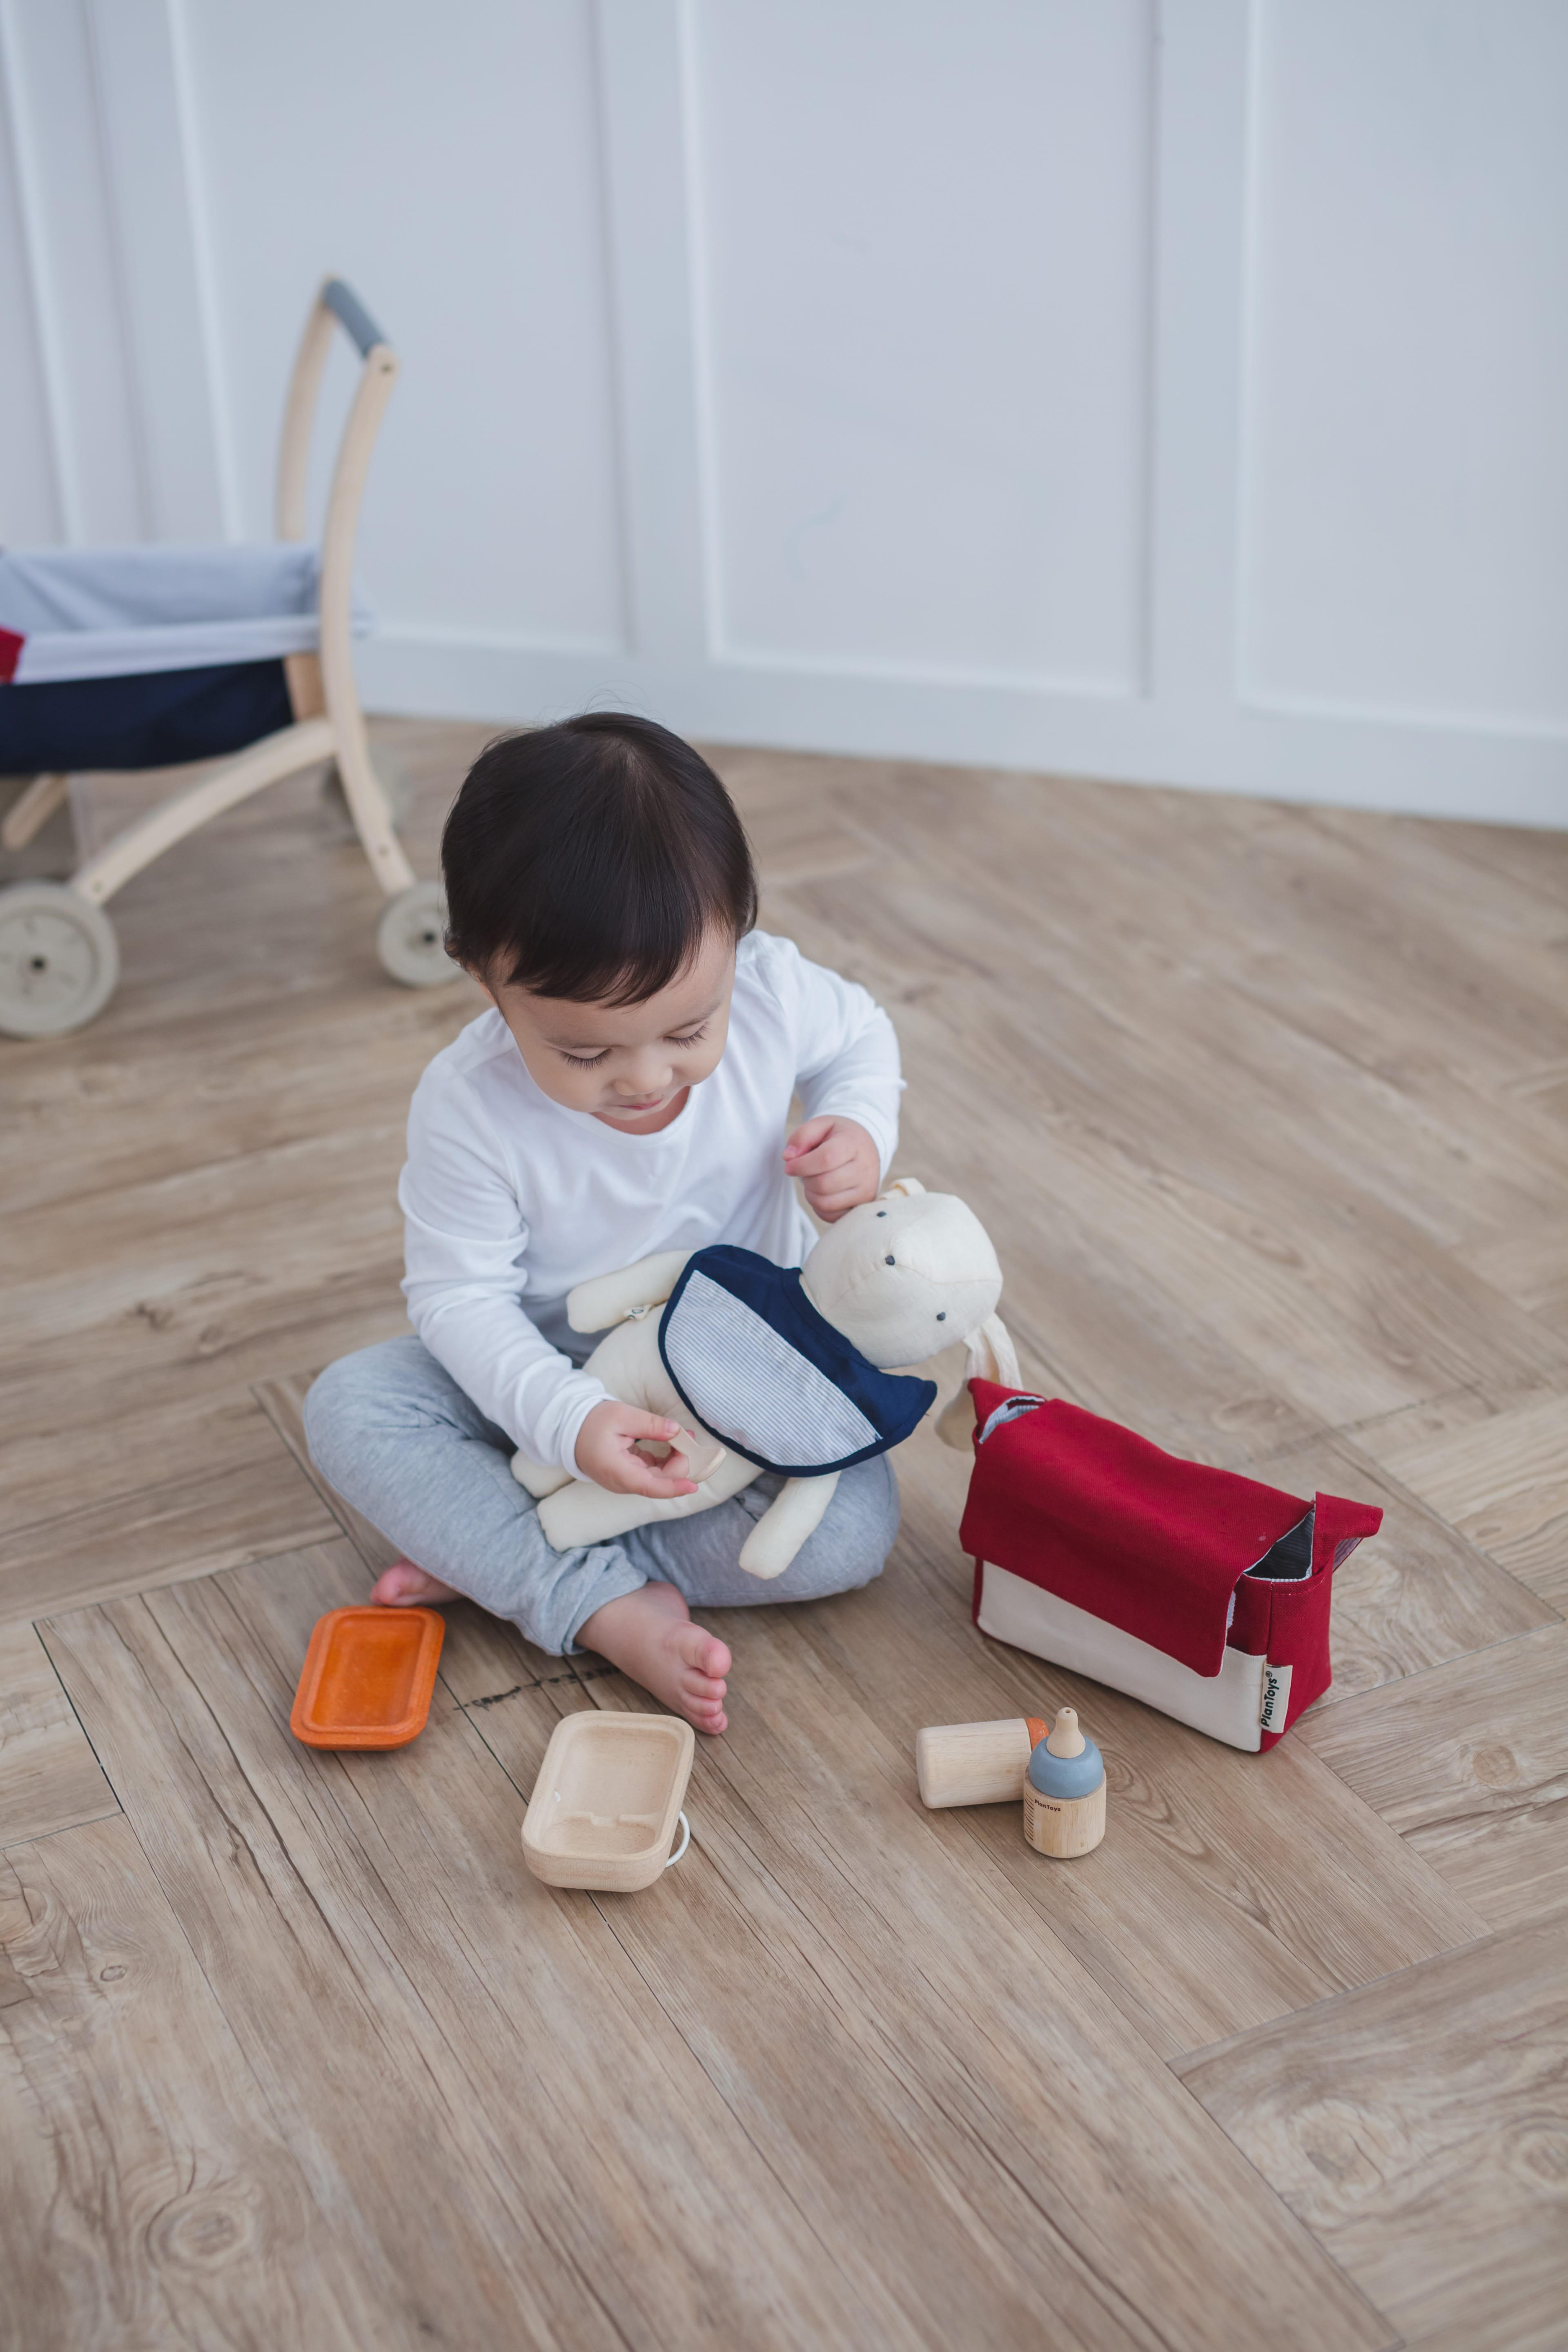 3499_PlanToys_BABY_FEEDING_SET_Pretend_Play_Imagination_Coordination_Language_and_Communications_Social_Fine_Motor_2yrs_Wooden_toys_Education_toys_Safety_Toys_Non-toxic_3.jpg